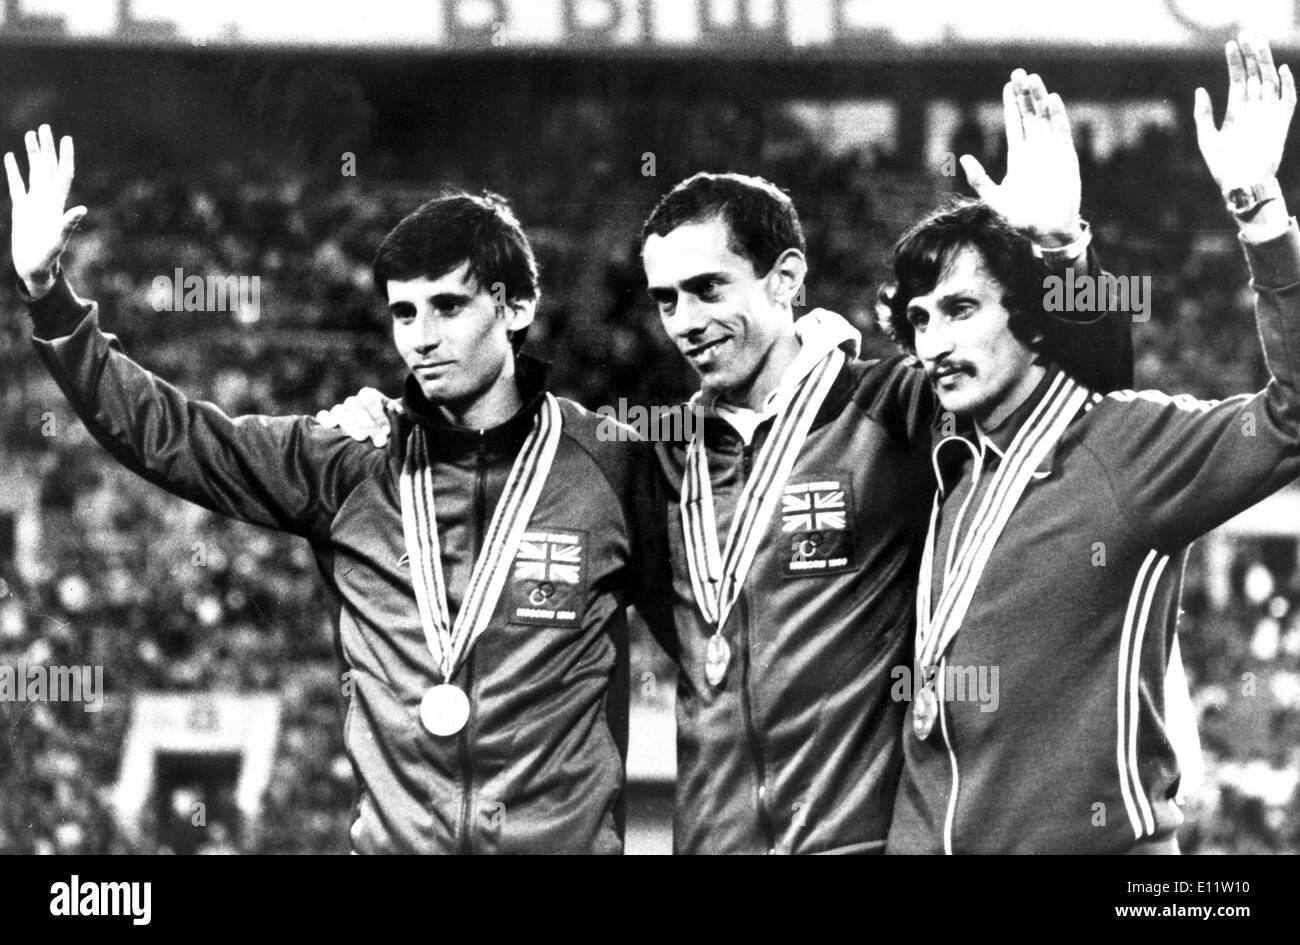 Jul 09, 1980; Moscow, RUSSIA; L-R SEBASTIAN COE, STEVE OVETT, and NIKOLAI KIROV after the final of the 800 meters. Ovett UK - Stock Image